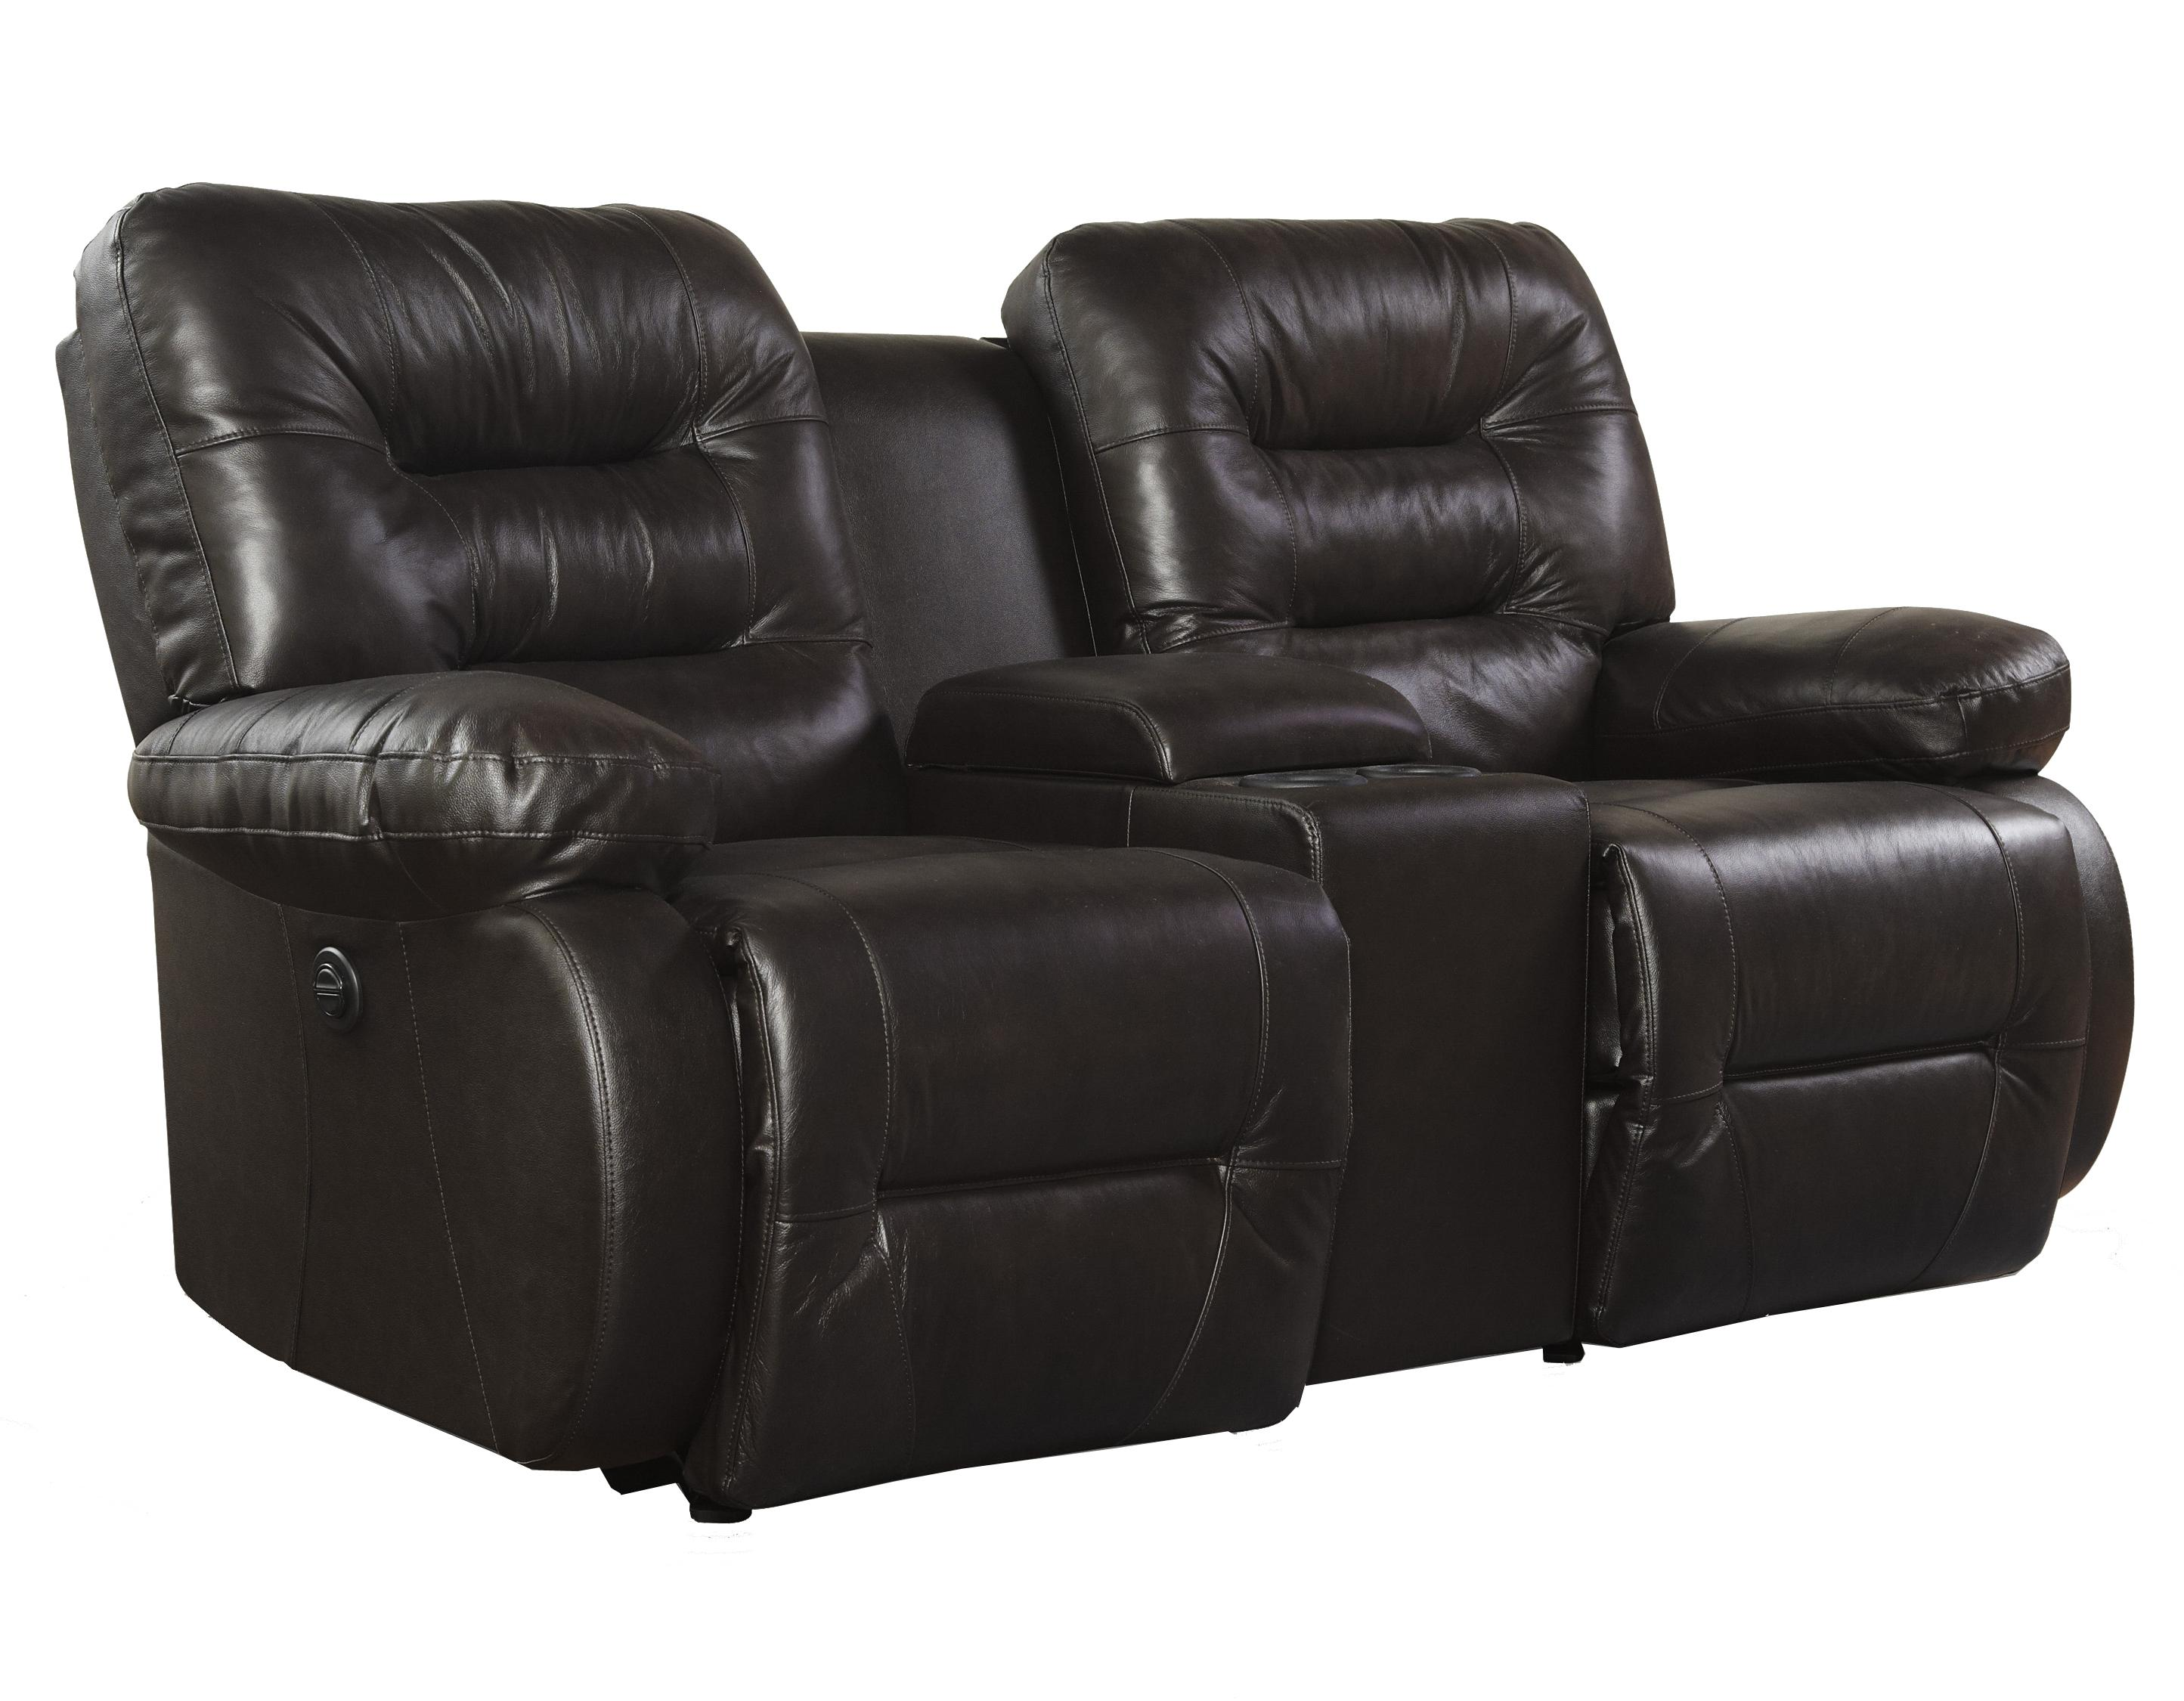 Maddox Console Space Saver Loveseat Chaise by Best Home Furnishings at Lapeer Furniture & Mattress Center